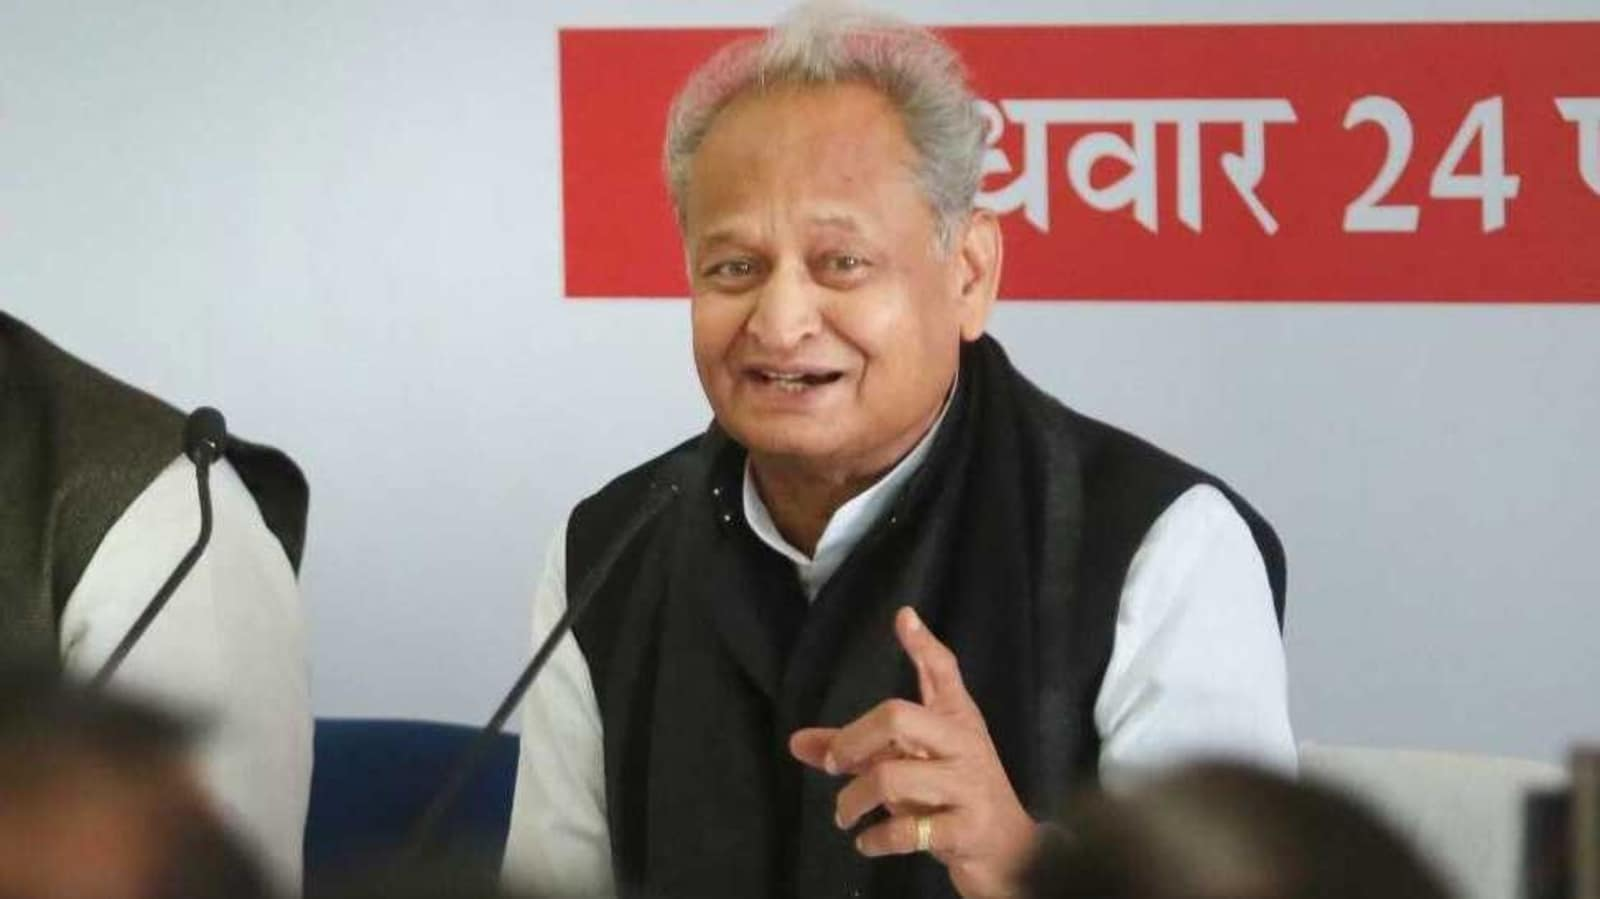 hindustantimes.com - HT Correspondent - Rajasthan to have separate agriculture budget from next year: Ashok Gehlot